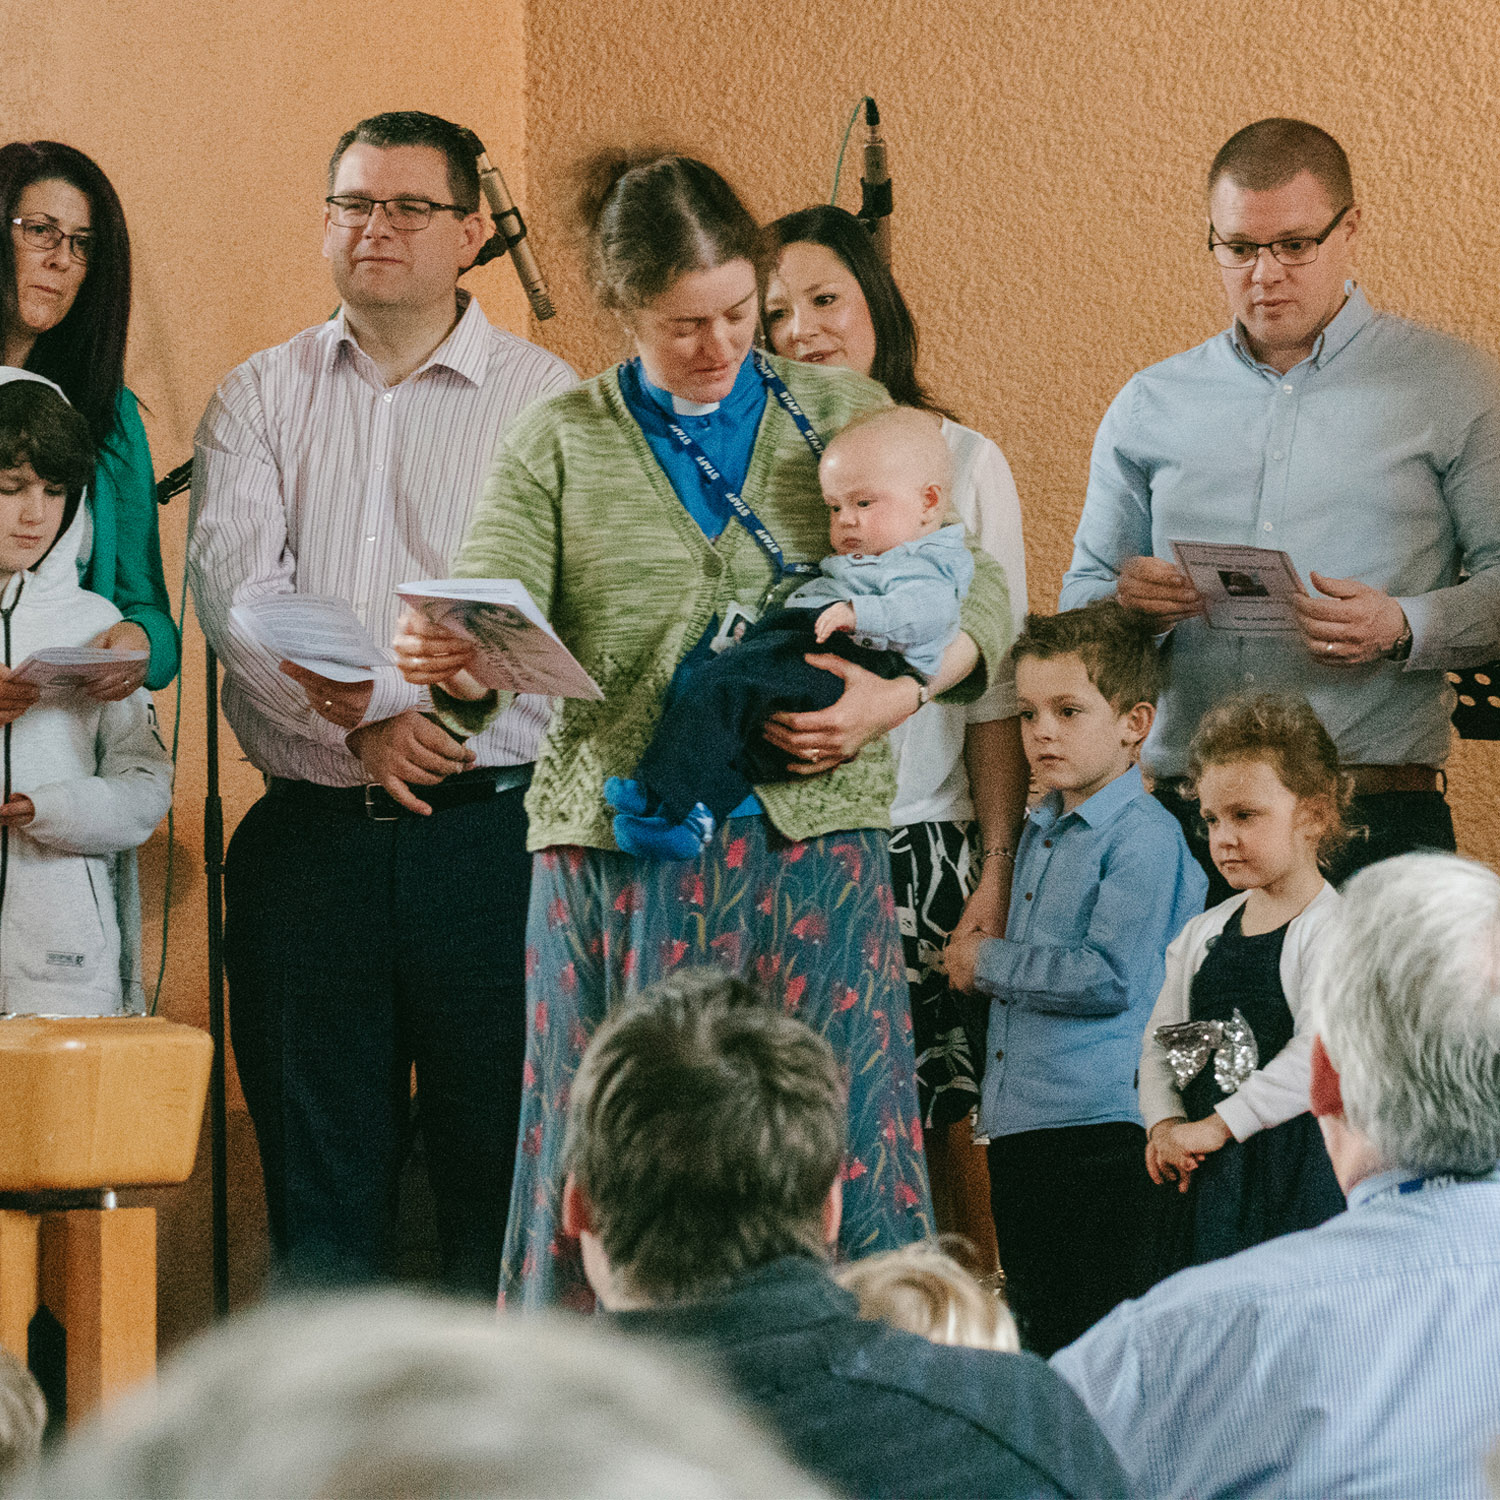 st-johns-harborne-baptism-child-baptism6-web.jpg